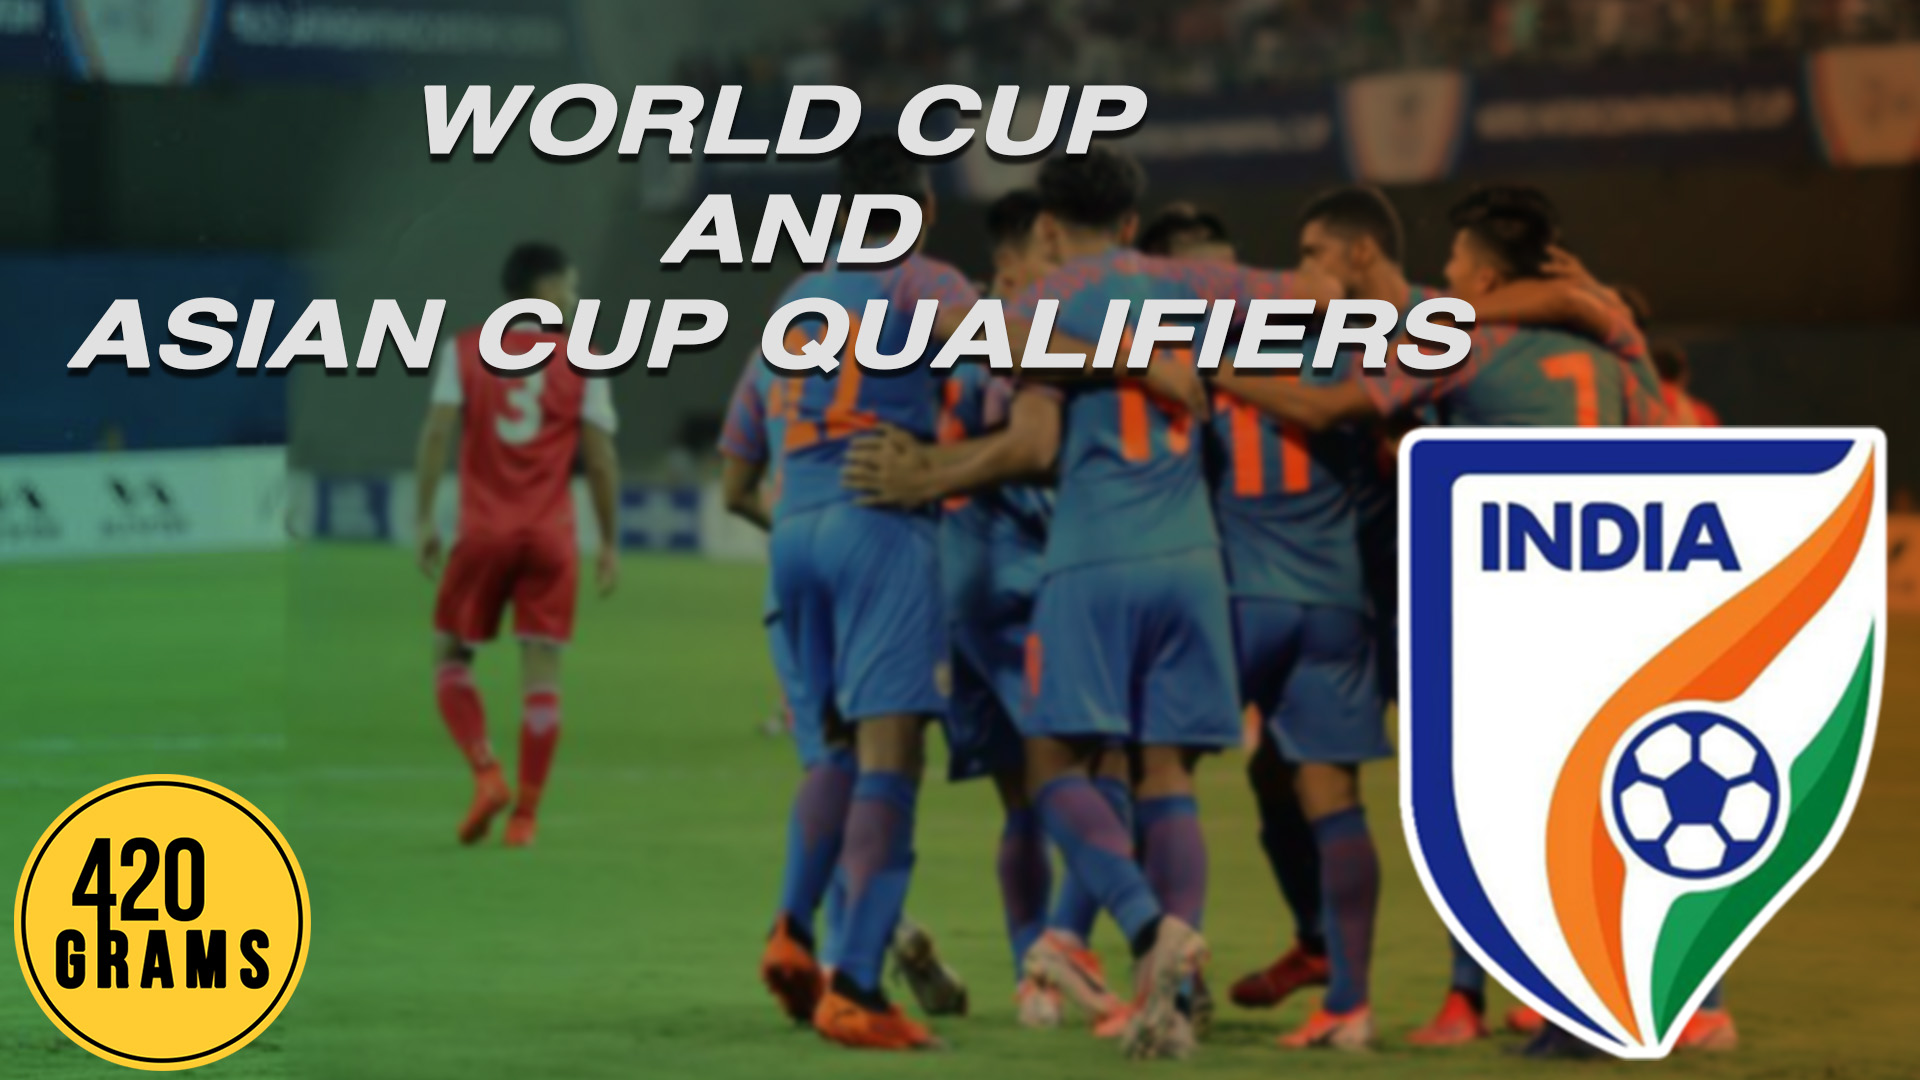 Indian football team's fixture for the FIFA World Cup 2022 qualifiers